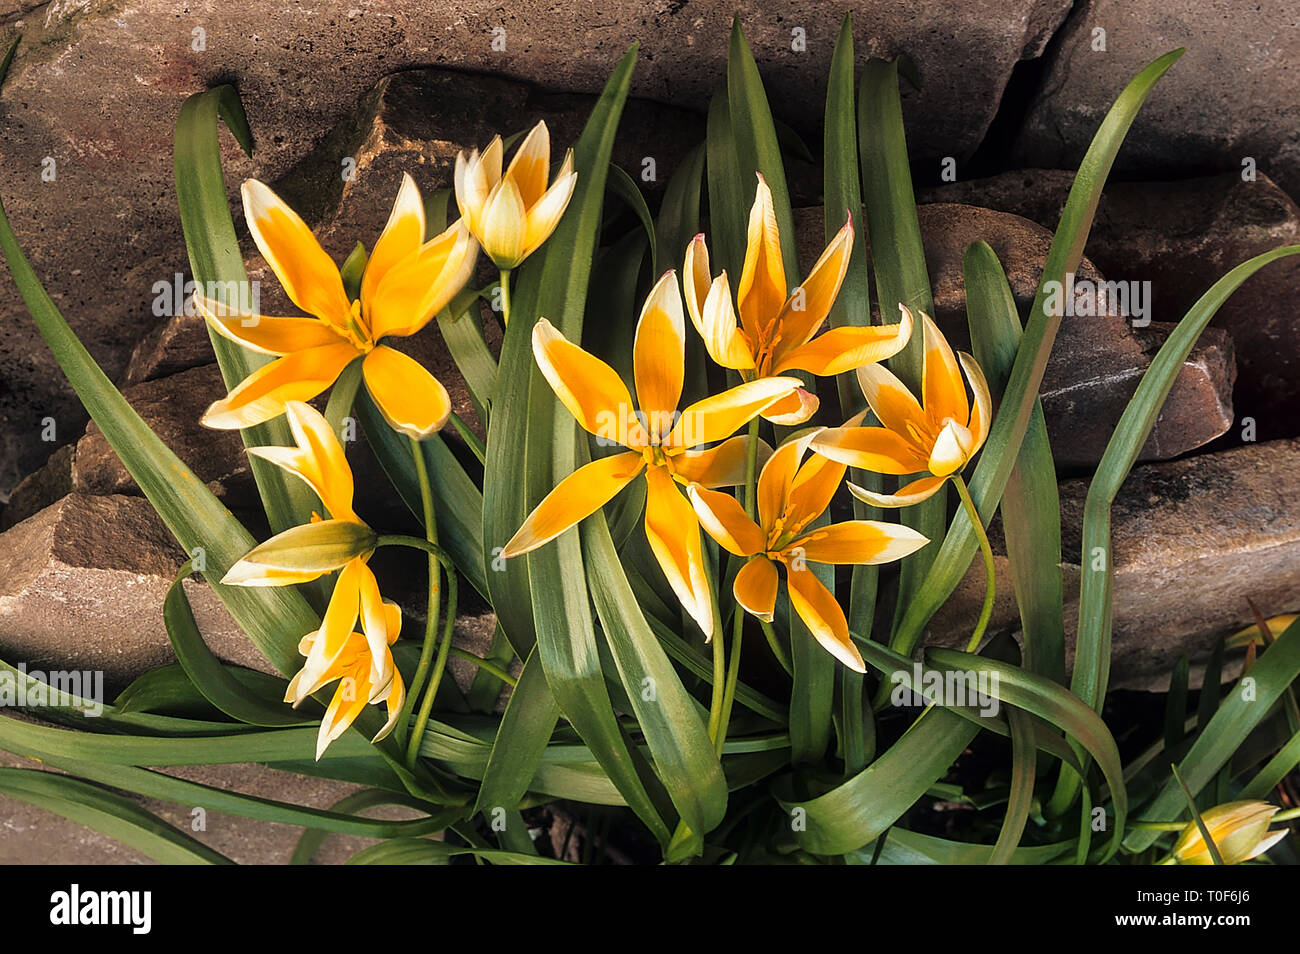 2872a6fbe3a Tulipa Tarda Tulipa dasystenon growing in rockery border Star shaped  flowers in early to mid spring